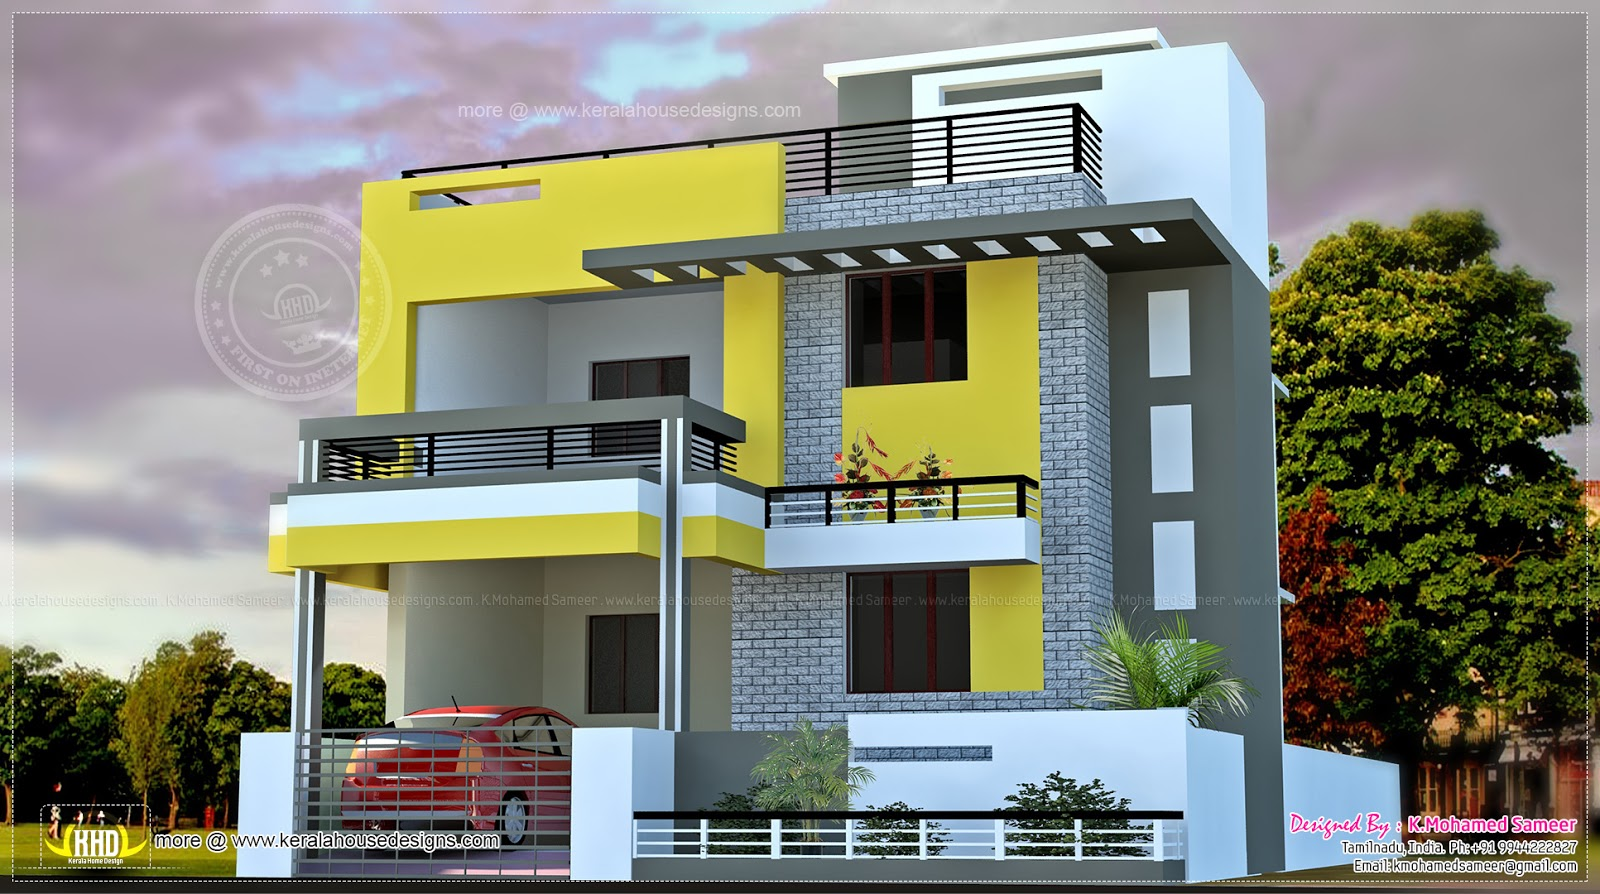 June 2013 kerala home design and floor plans 1200 sq ft house plan indian design